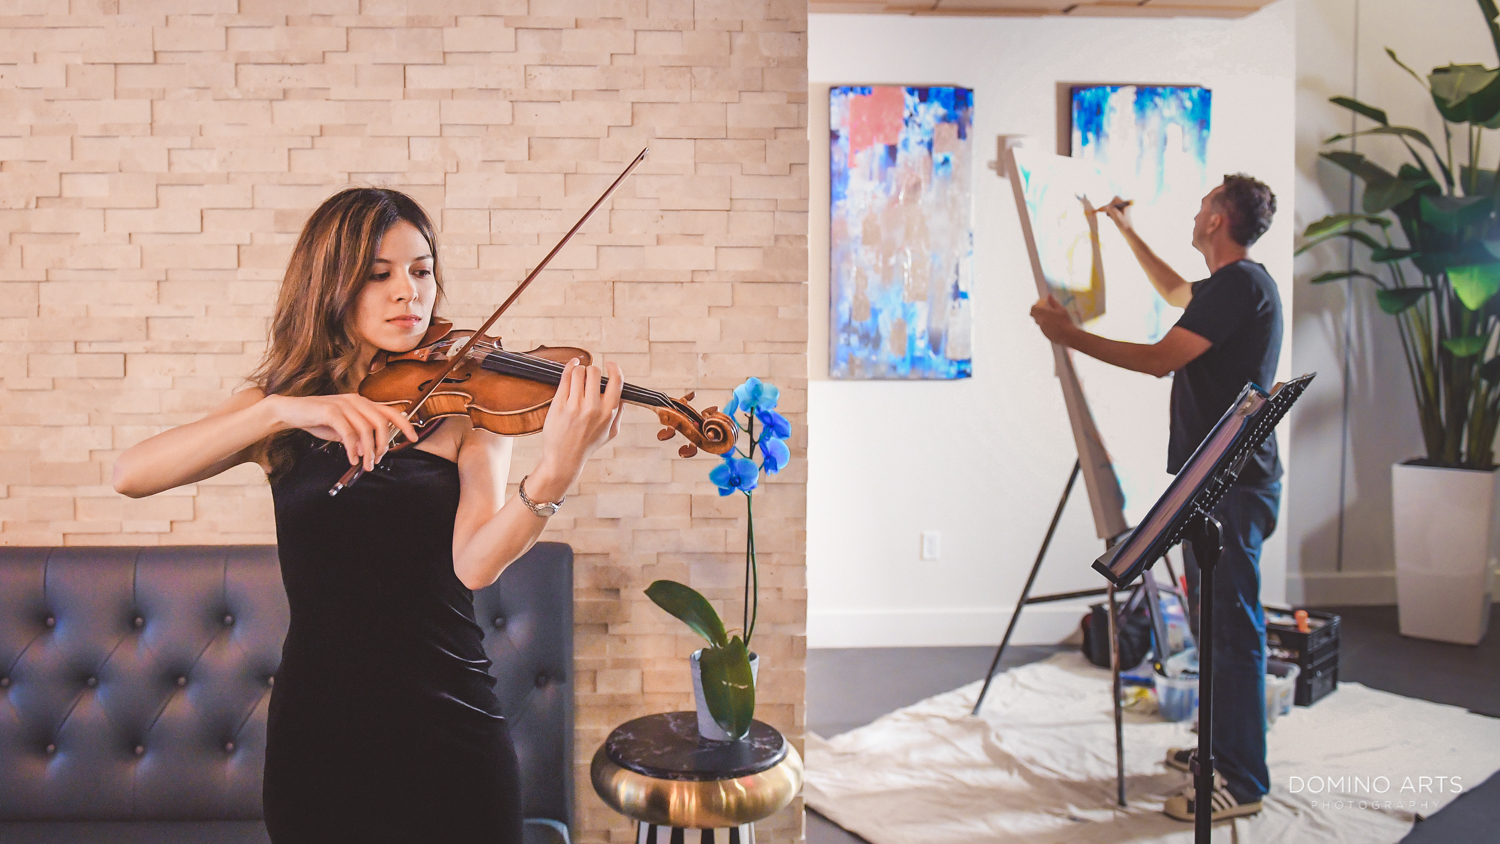 Violin and artist entertainment ar Circ Hotel Grand Opening Corporate Event in Hollywood, Florida